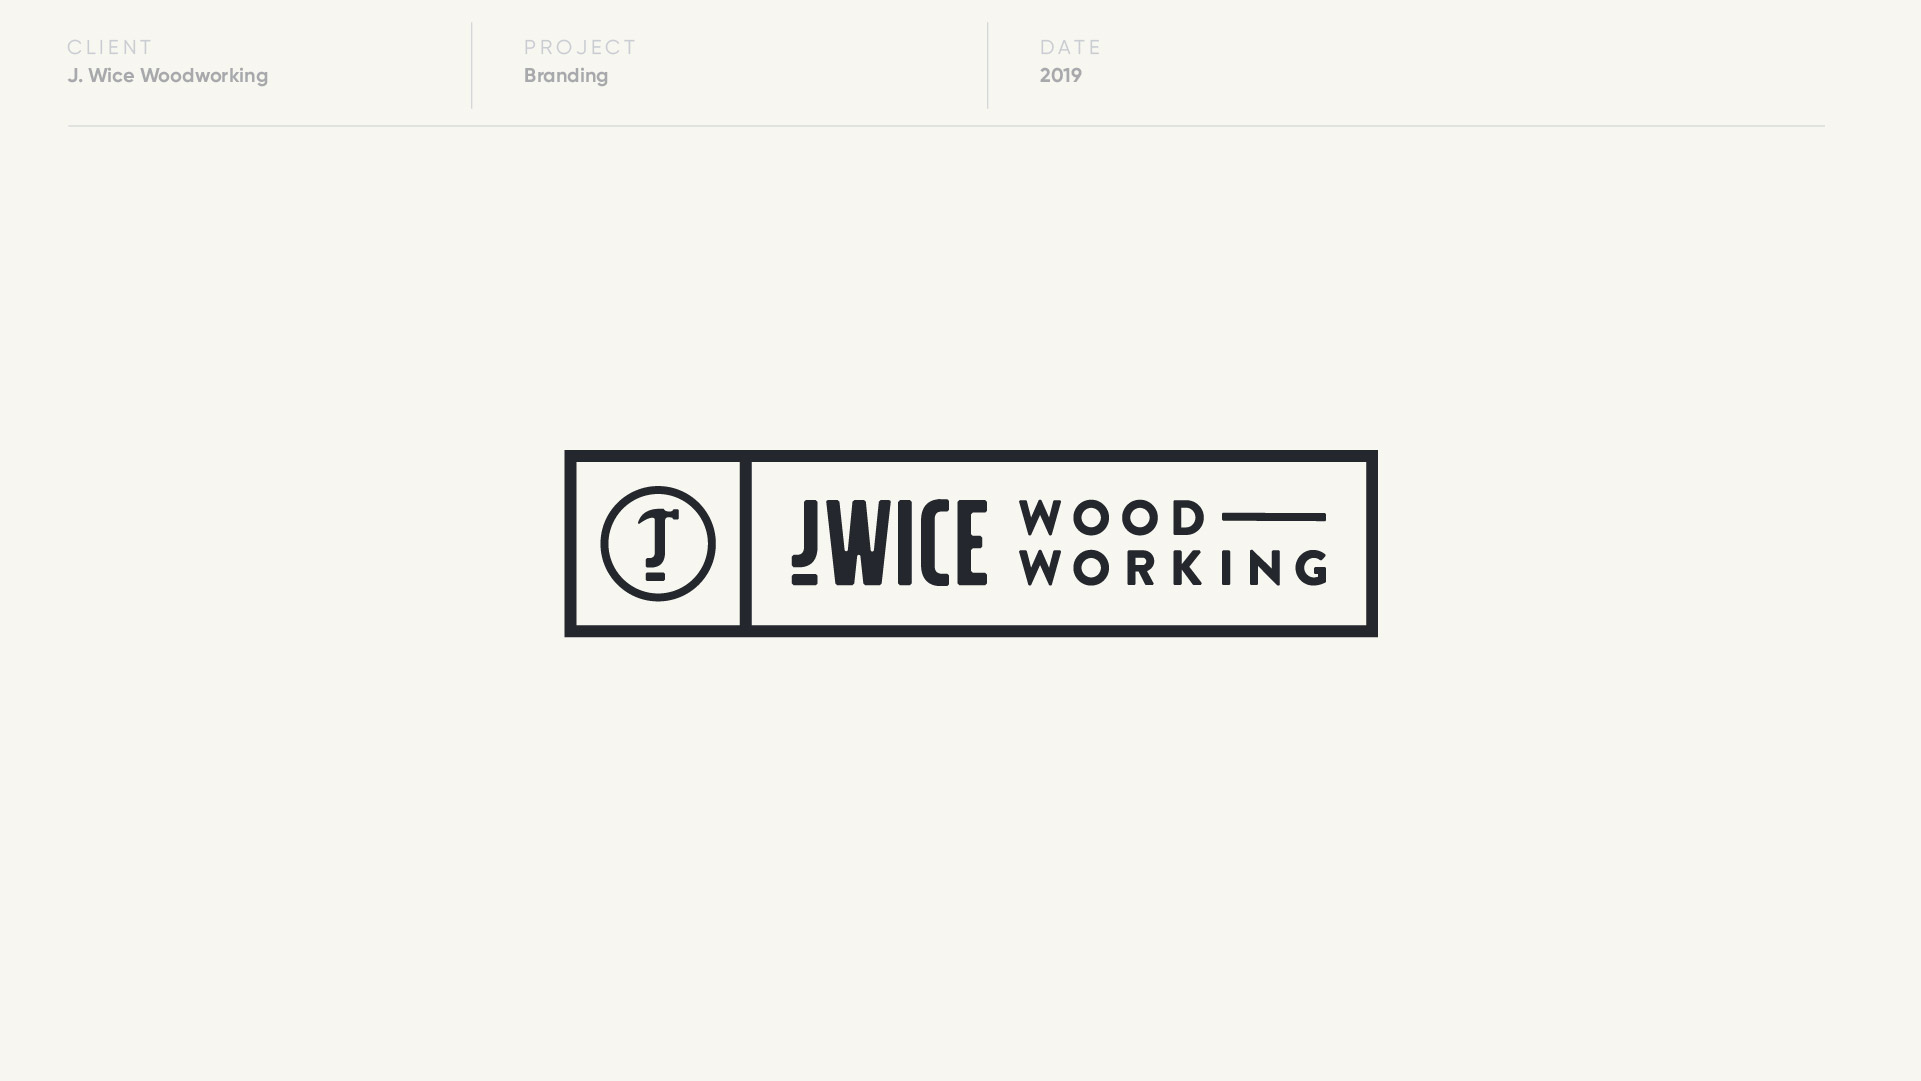 j wice woodworking logo design by anthony mika